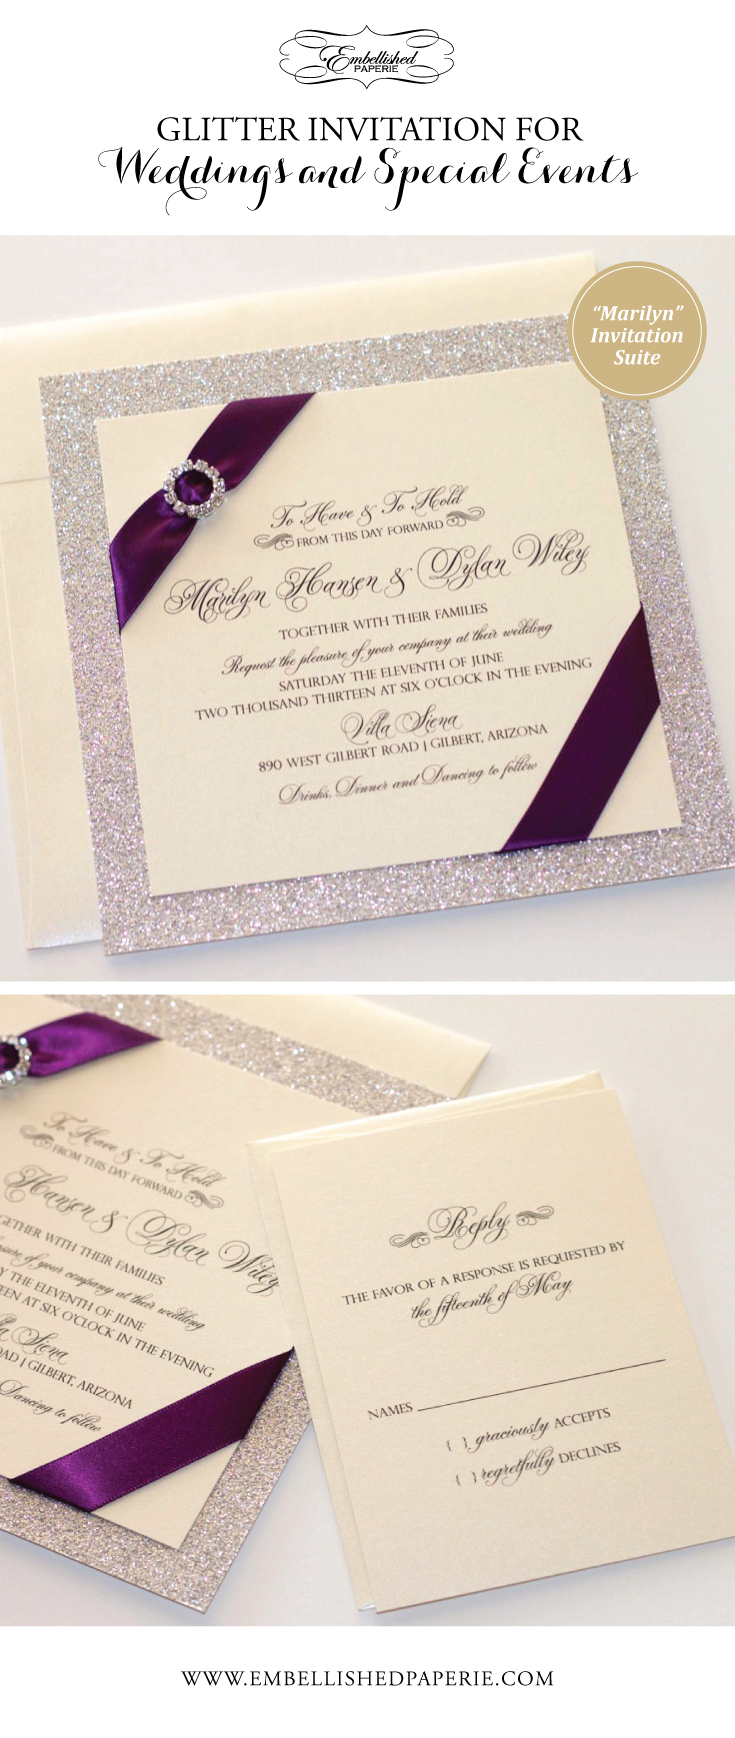 Glitter Wedding Invitation - Elegant Wedding Invitation - Romantic ...